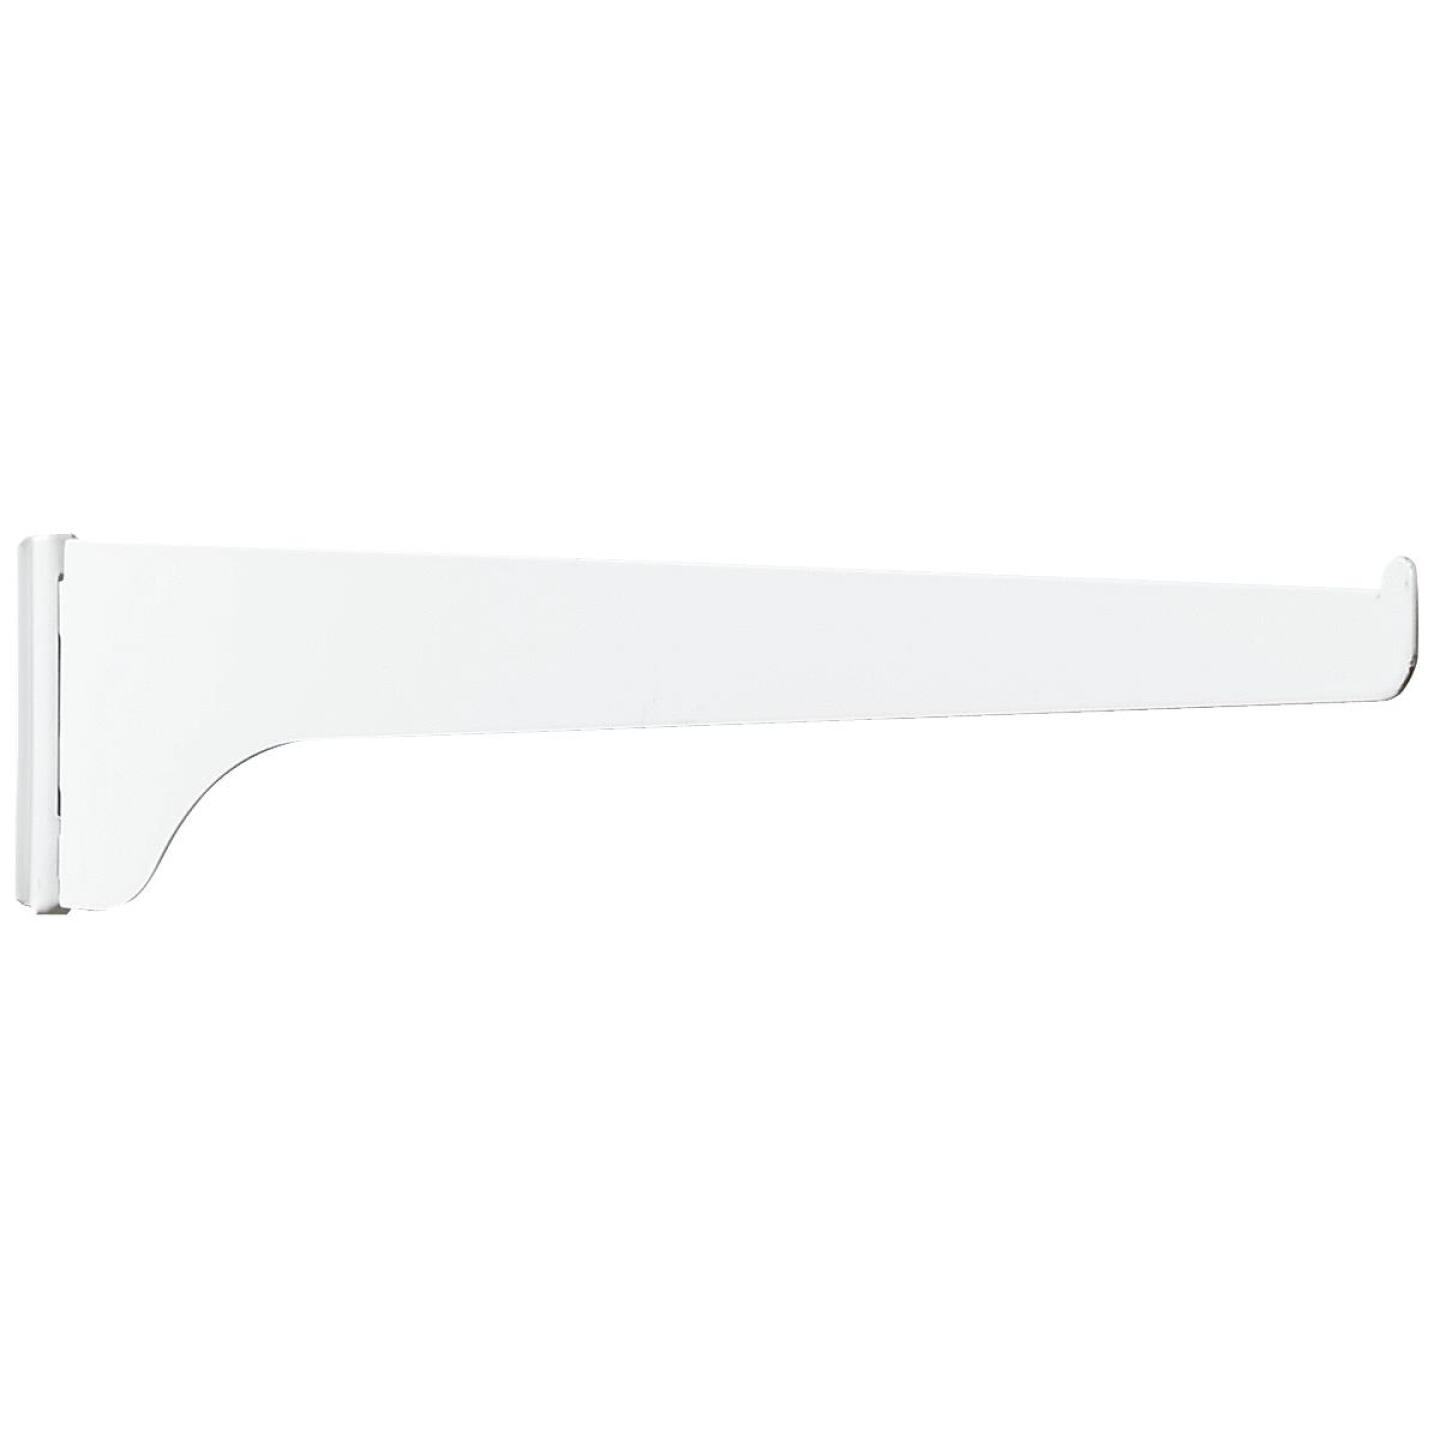 Knape & Vogt 180 Series 12 In. White Steel Regular-Duty Single-Slot Shelf Bracket Image 1